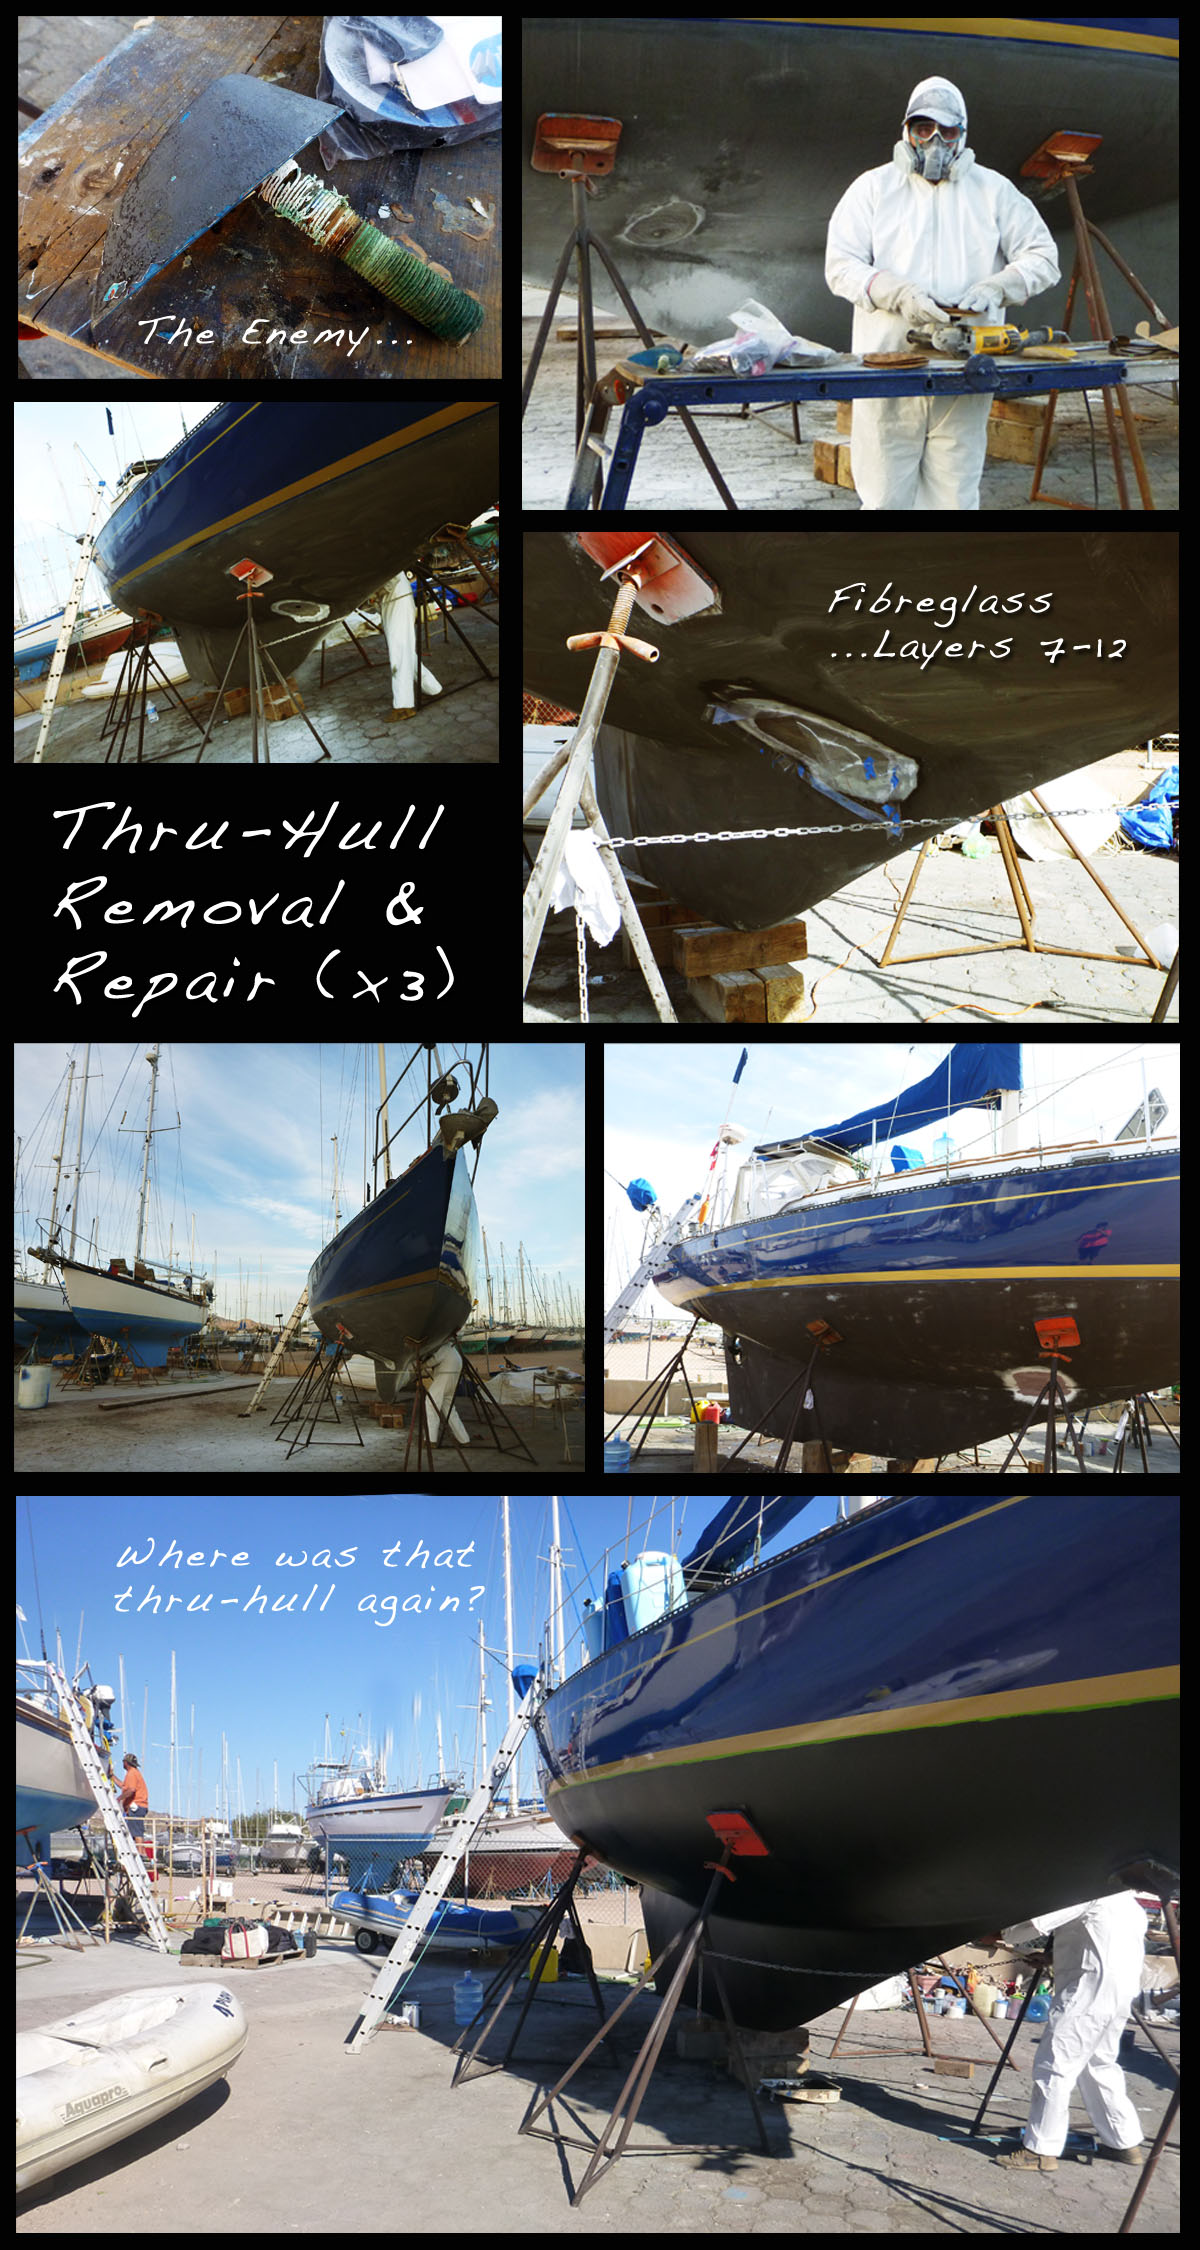 Removing and Repairing Old Thru Hulls NorWest 33